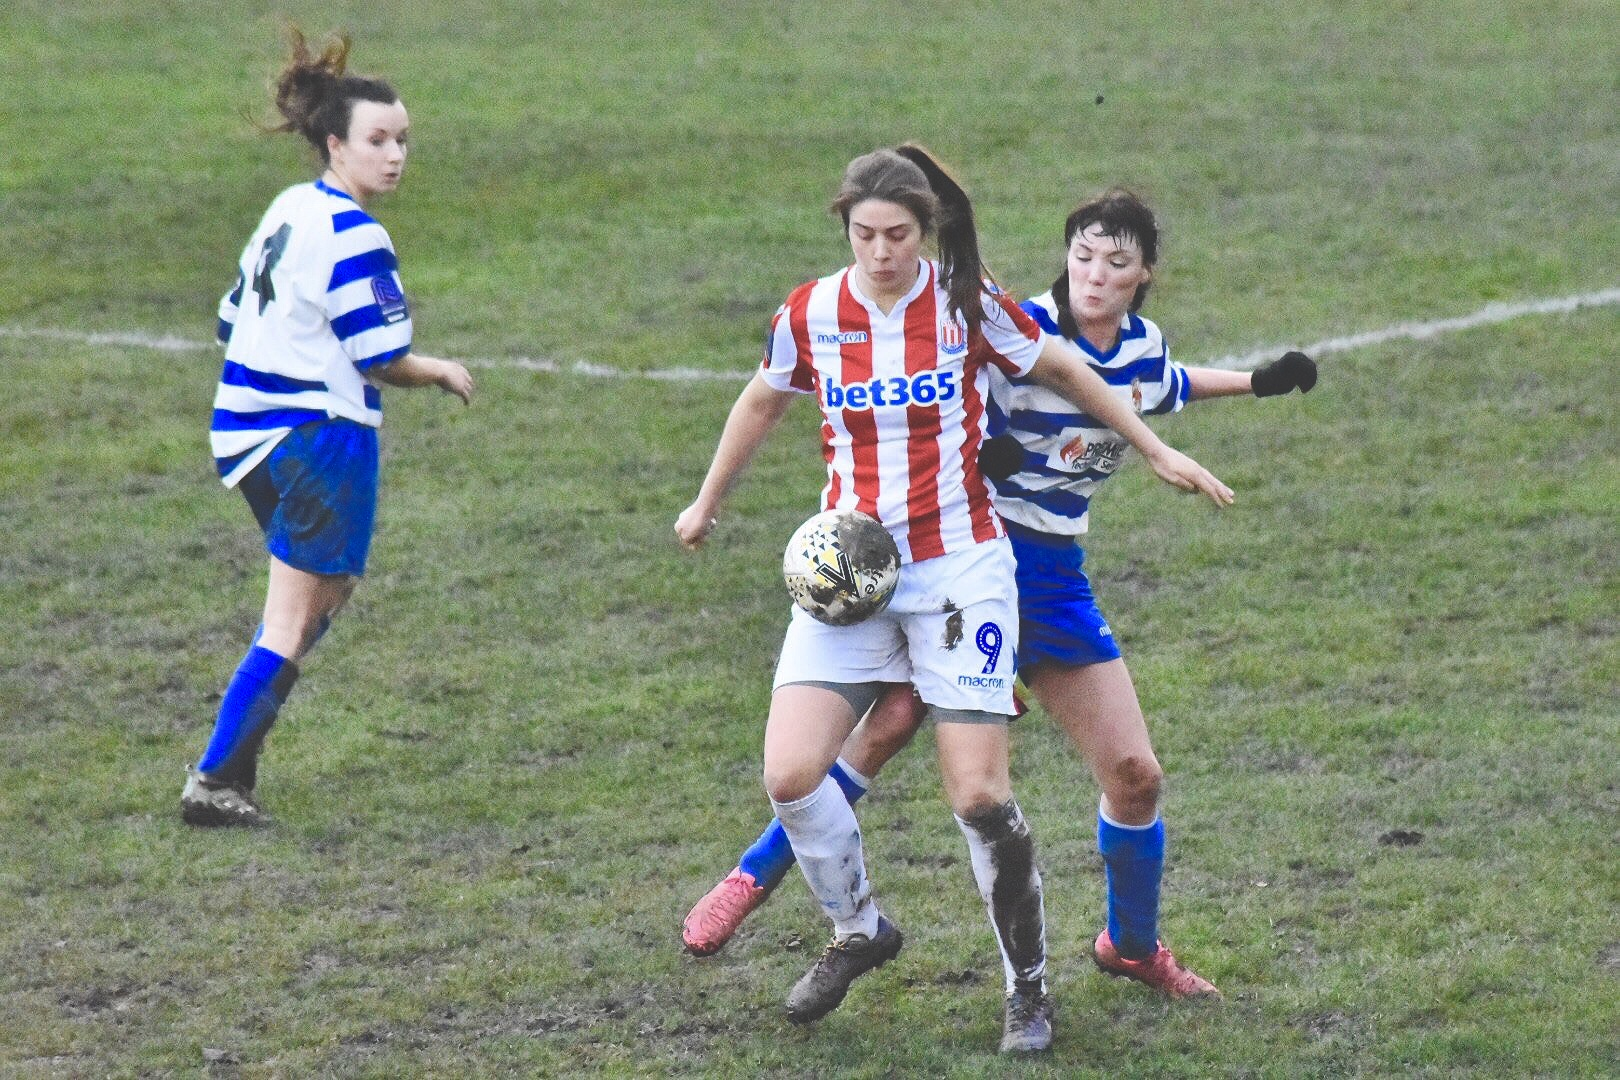 Amy Hughes for Stoke City Ladies against Chester-Le-Street in the SSE FA Cup.